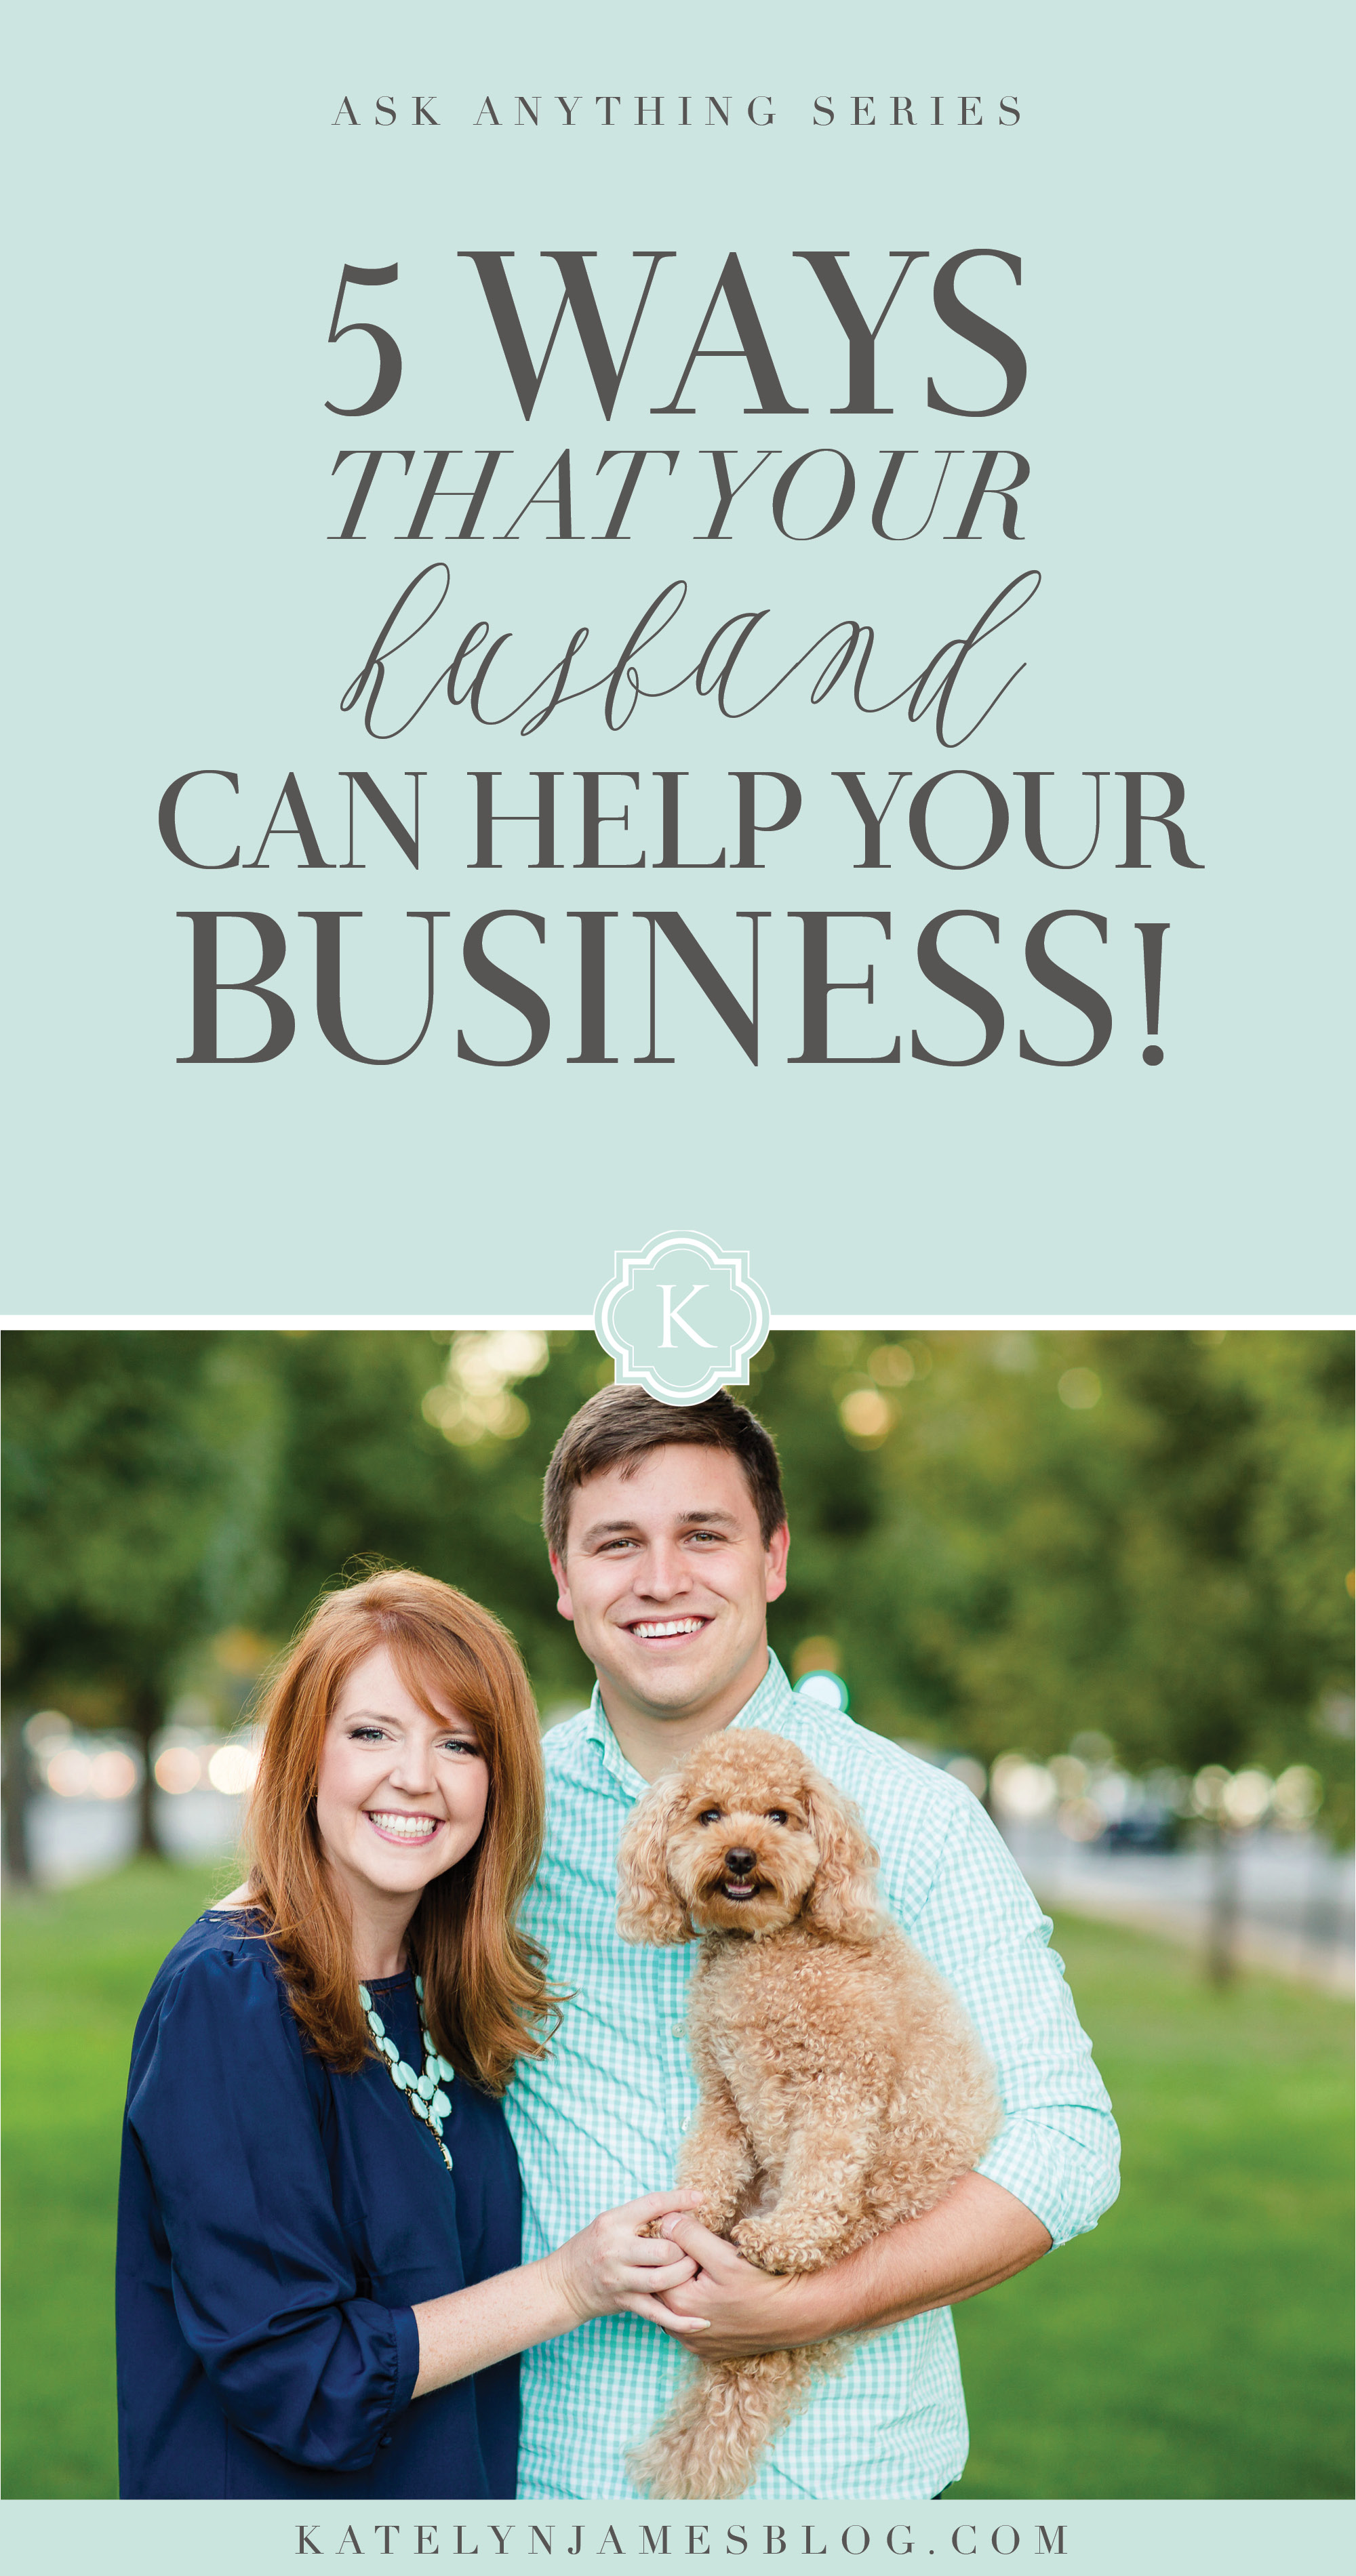 5 Ways Your Husband Can Help Your Business by Katelyn James Photography